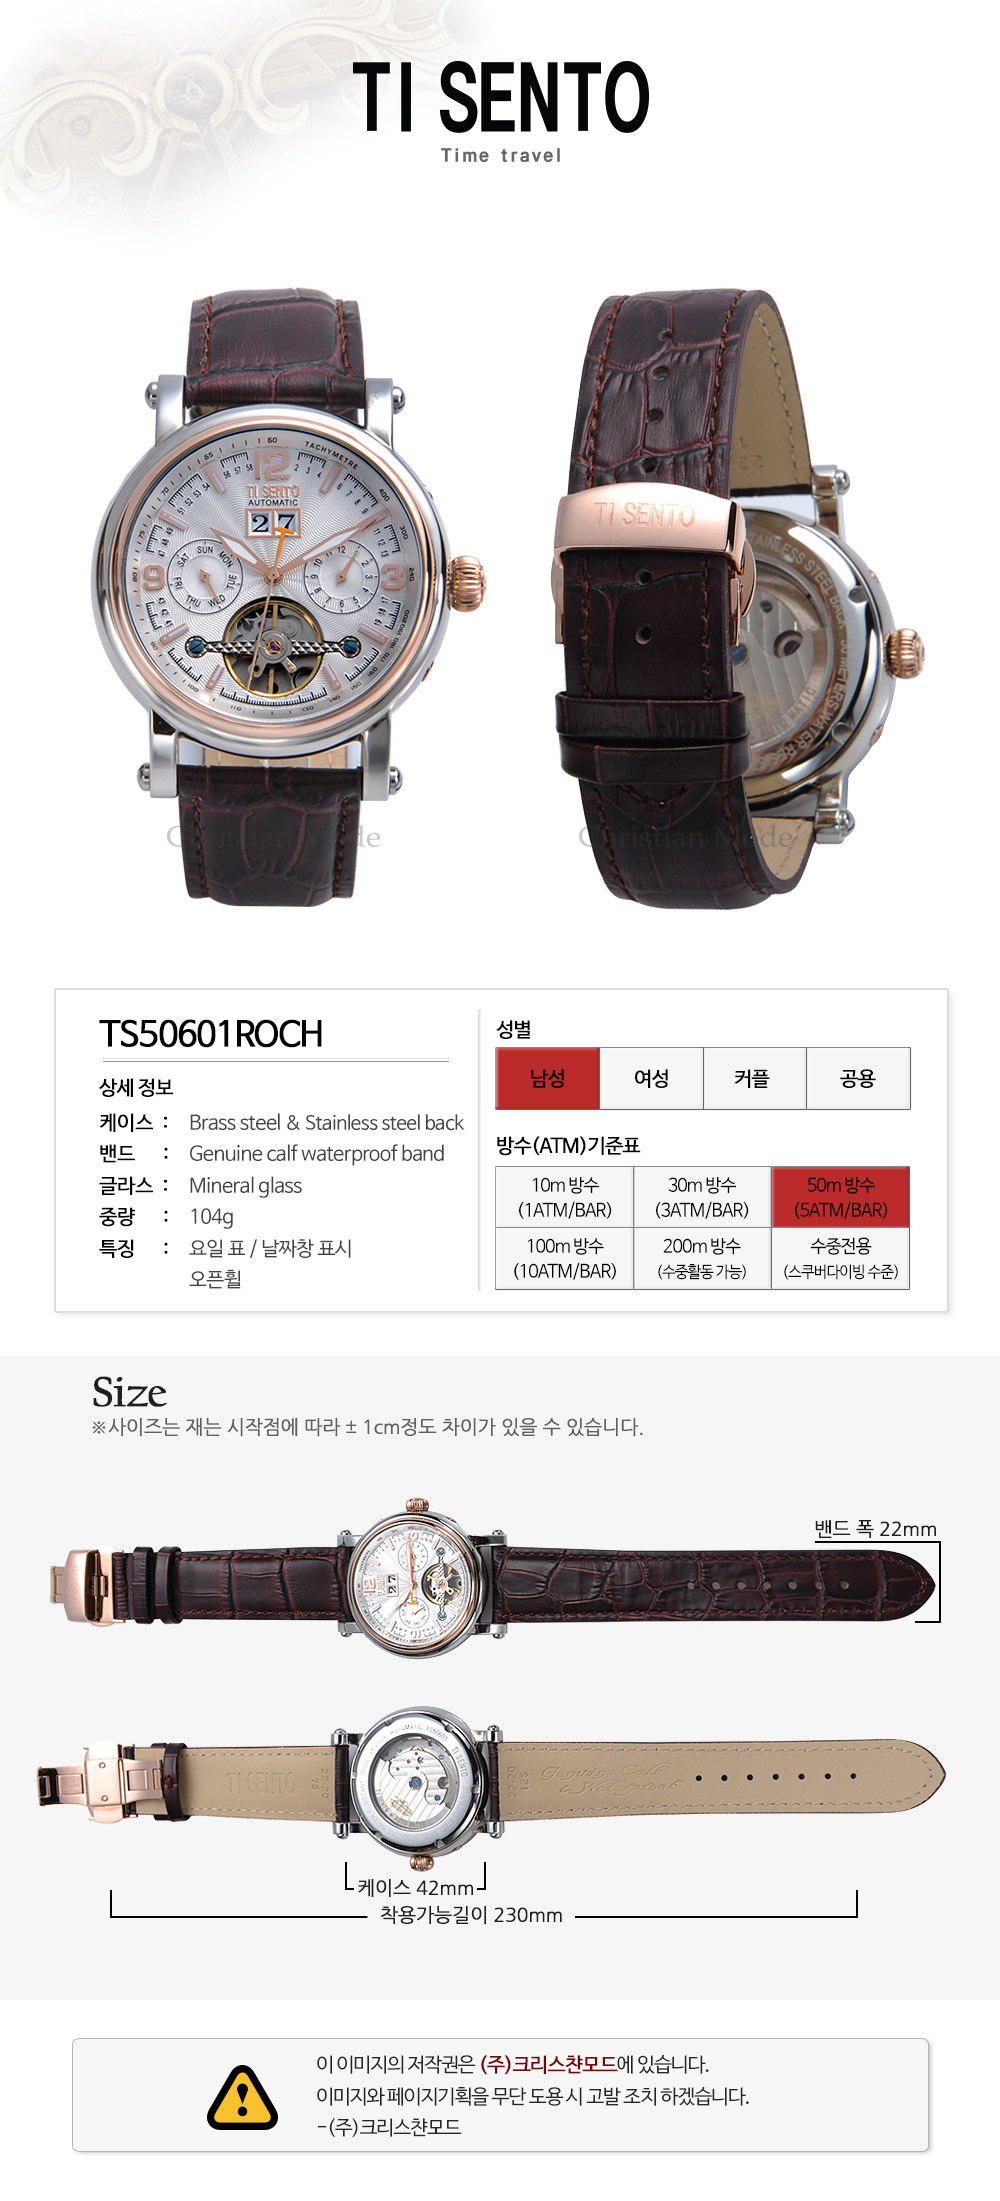 [ TISENTO ] KOREA MADE HIGH QUALITY AUTOMATIC MECHANICAL GENUINE CALF WATERPROOF LEATHER STRAP WATCH TS 50601 ROCH